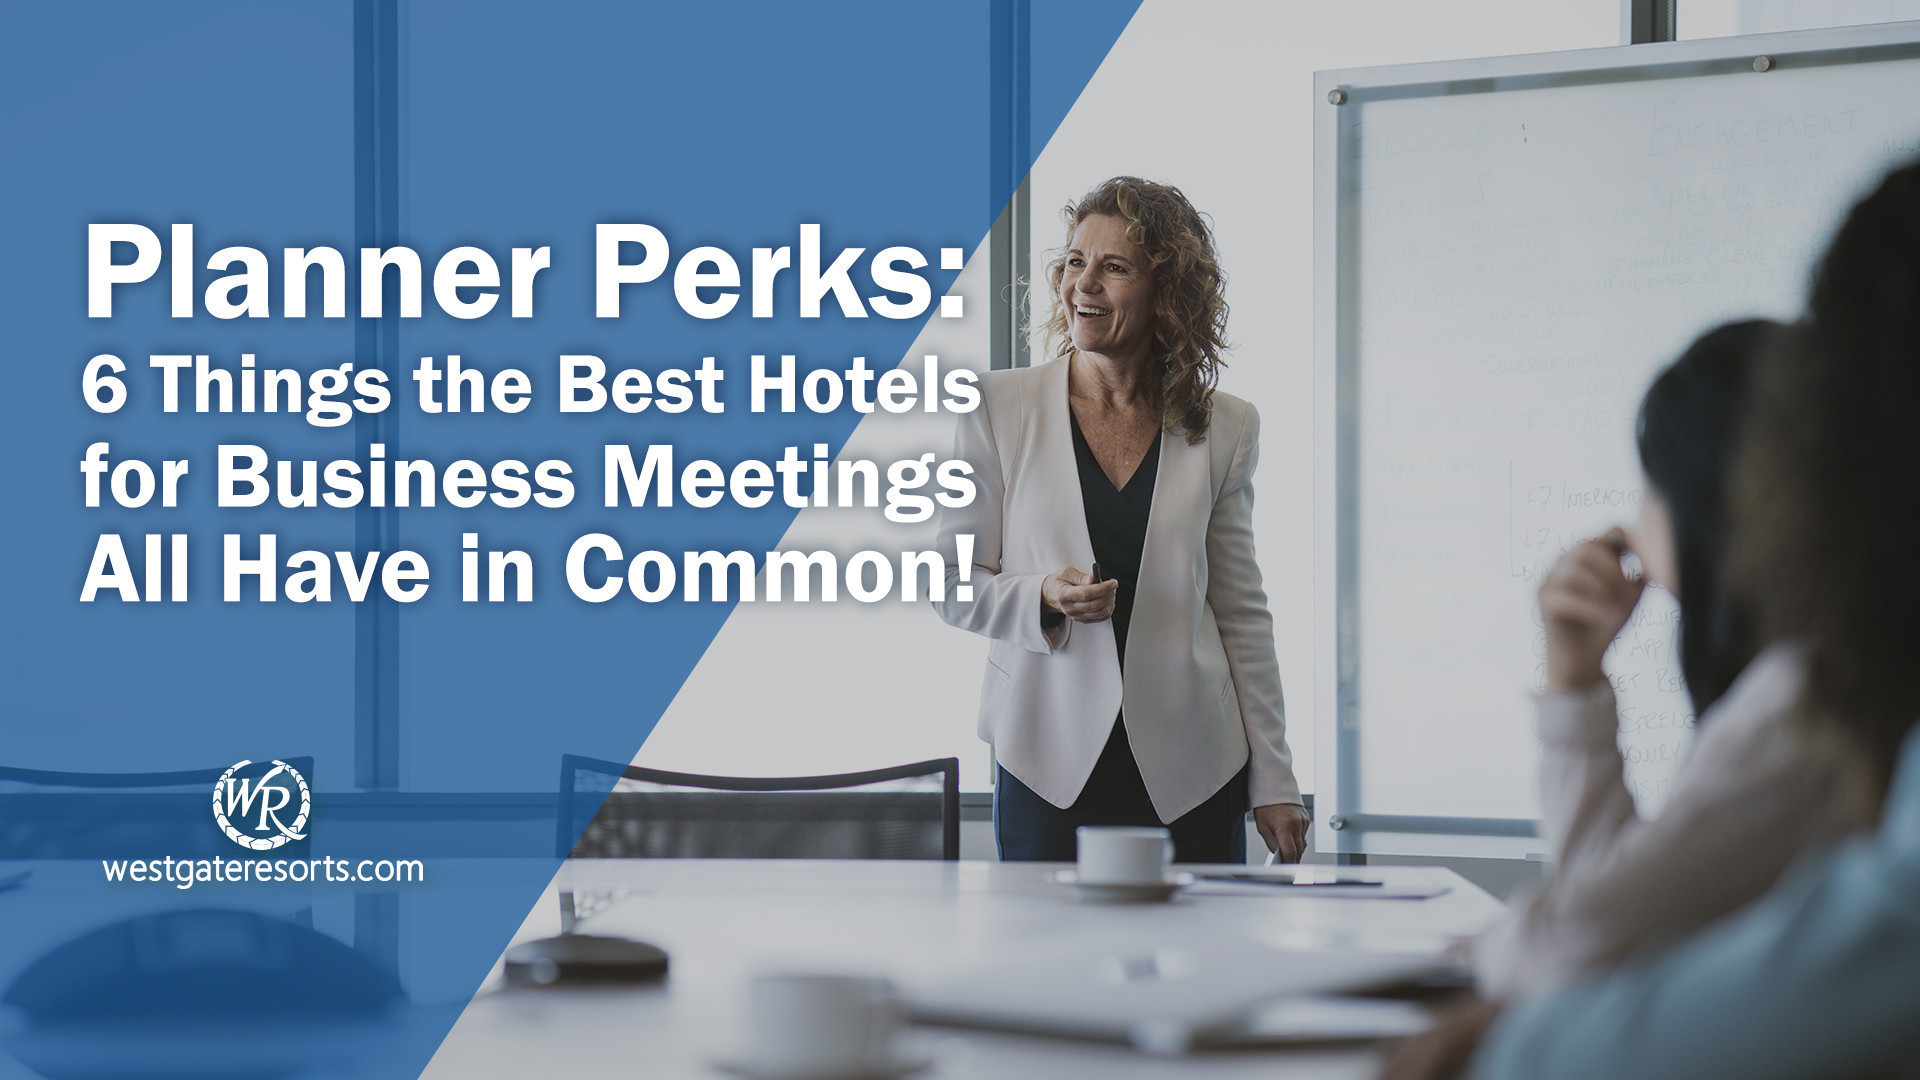 Planner Perks: 6 Things the Best Hotels for Business Meetings All Have in Common! | Westgate Groups & Business Meetings